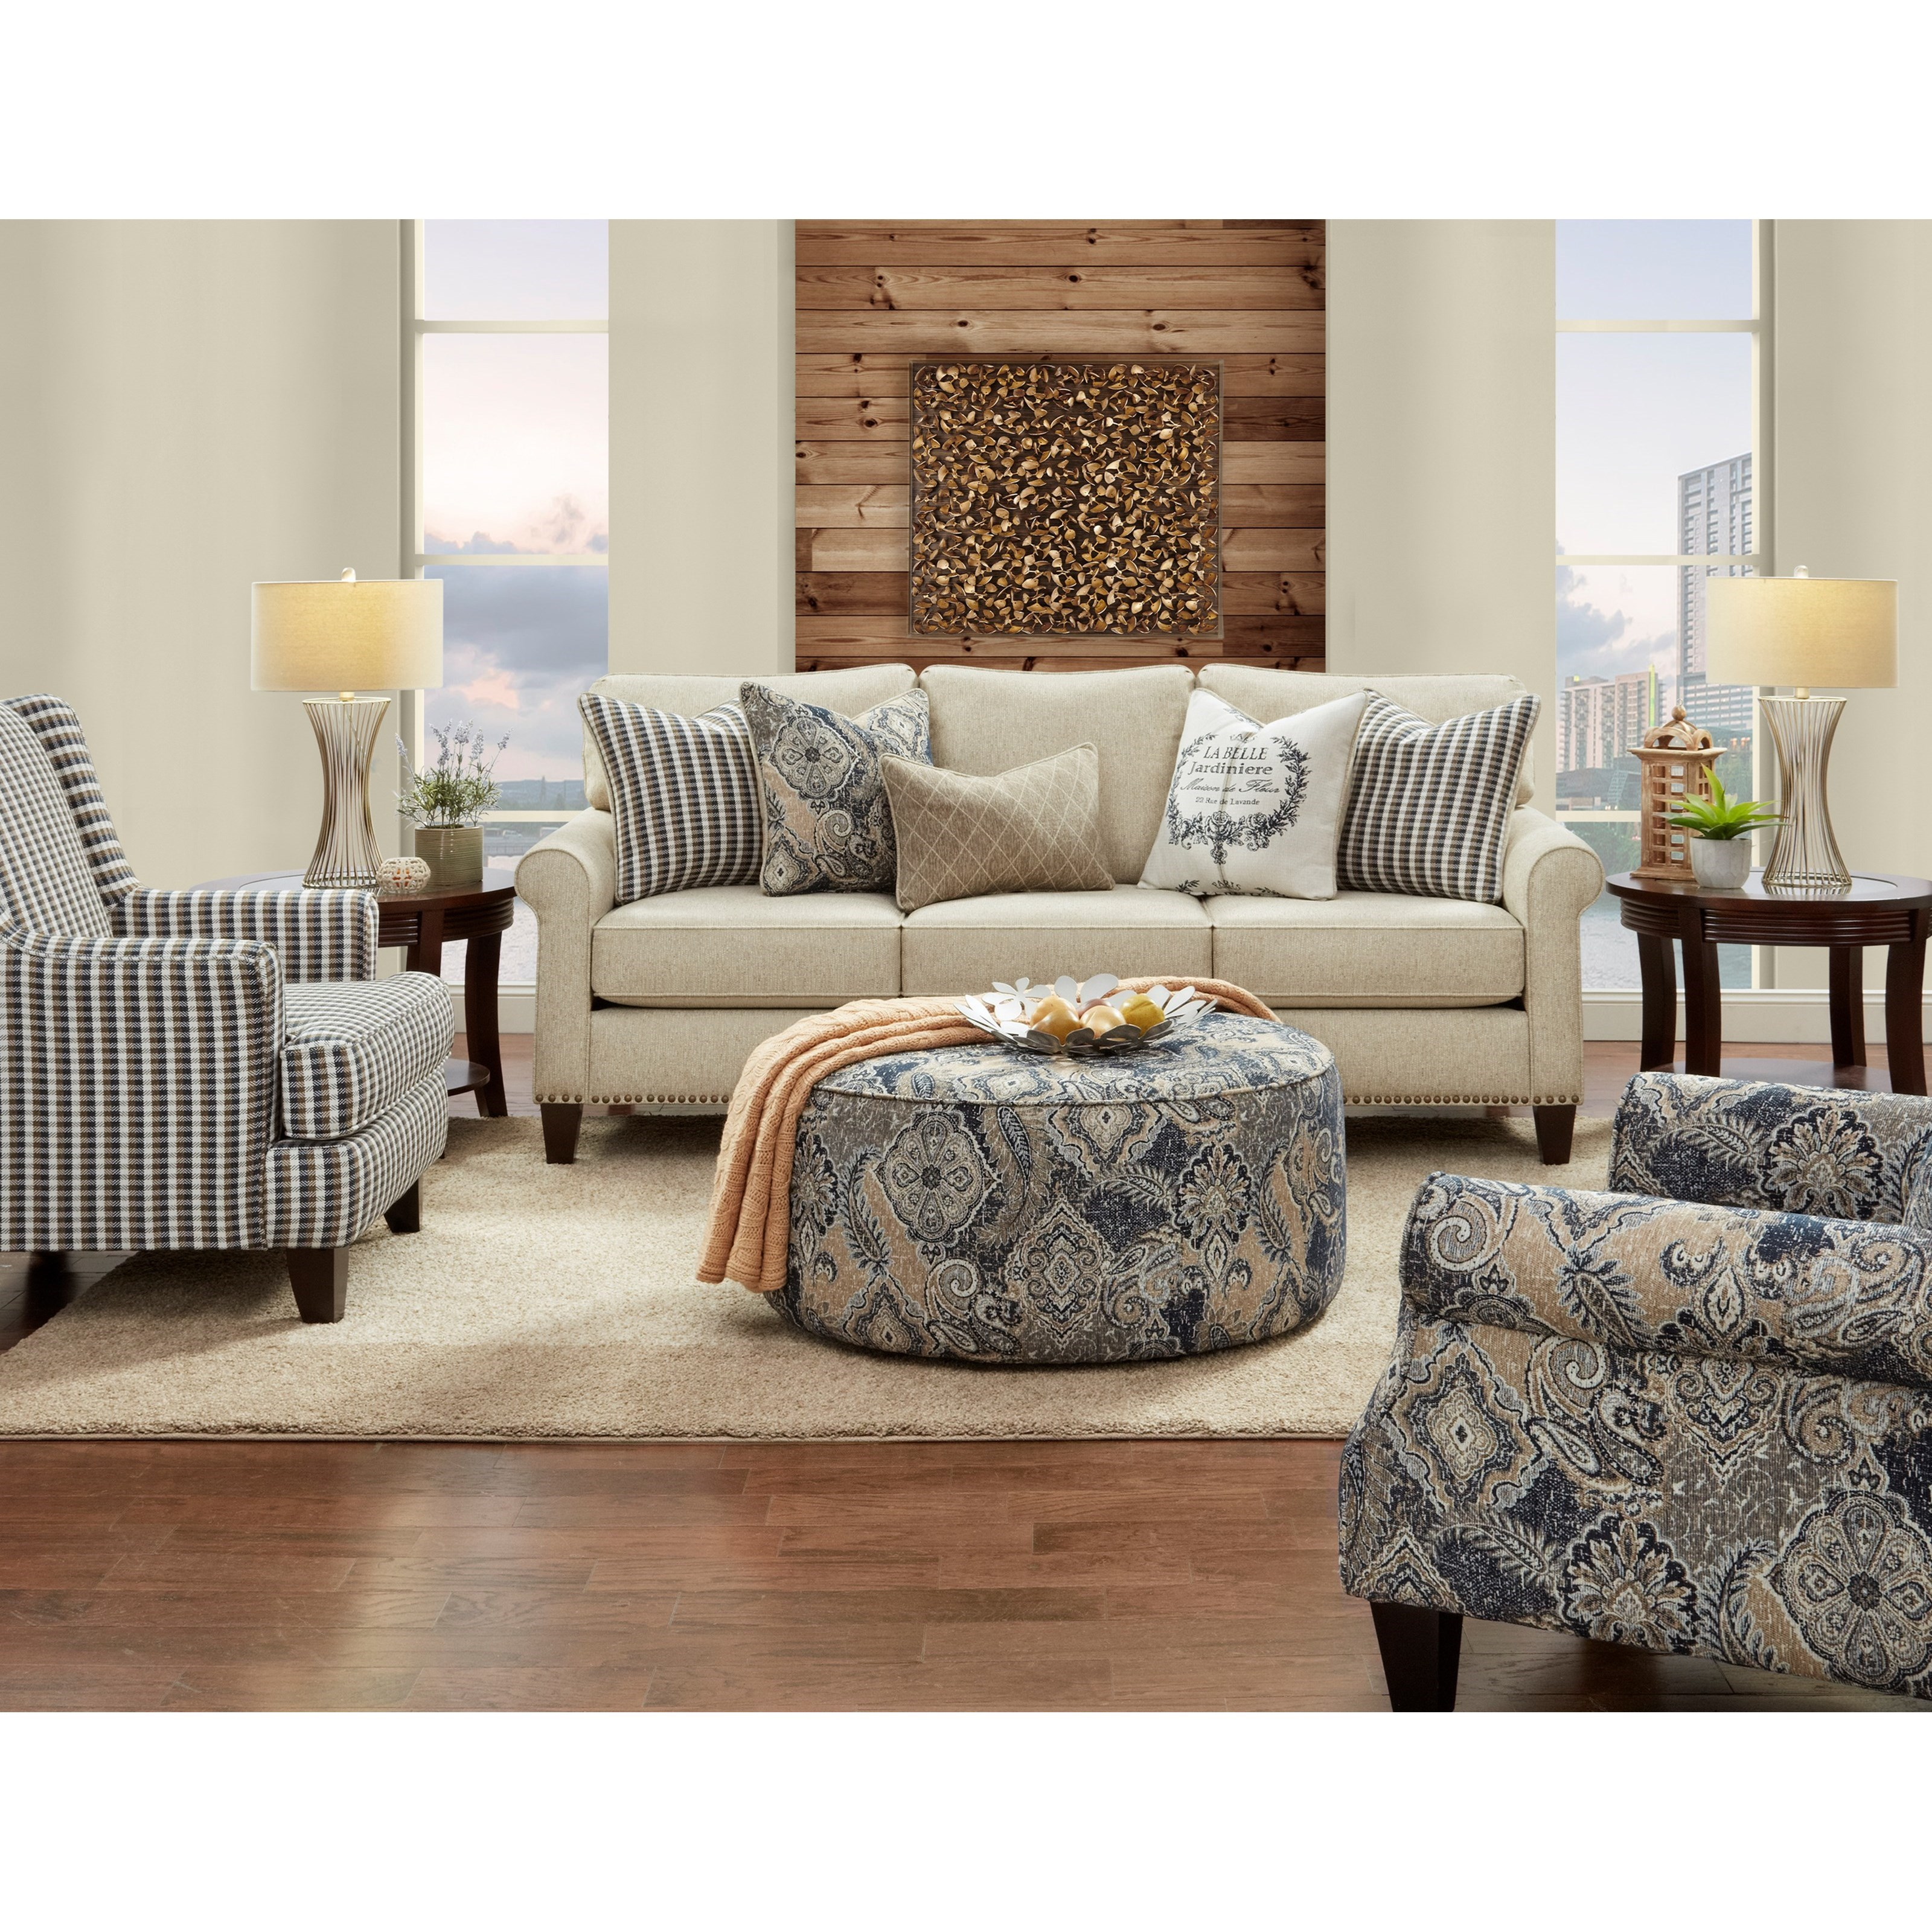 47-00 Living Room Group by Fusion Furniture at Prime Brothers Furniture